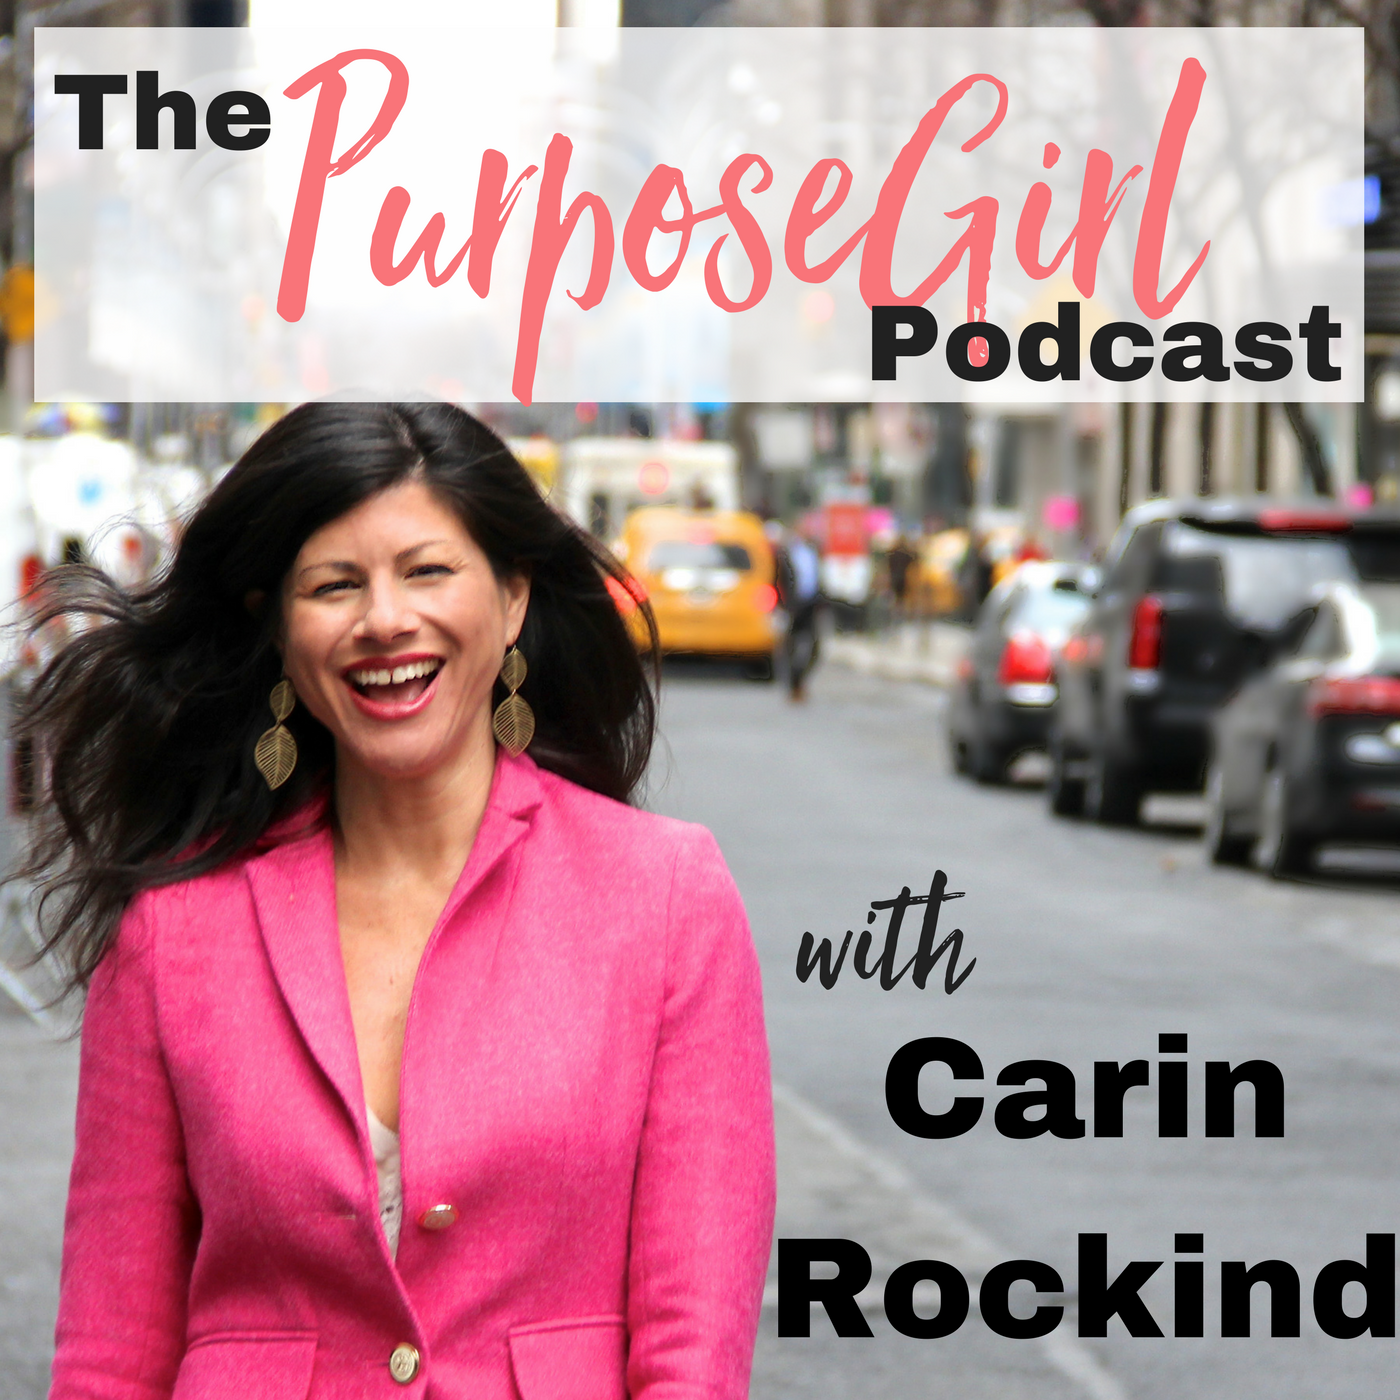 Artwork for The PurposeGirl Podcast Episode 024: Why Women Struggle With Low Confidence and What They Can Do About It